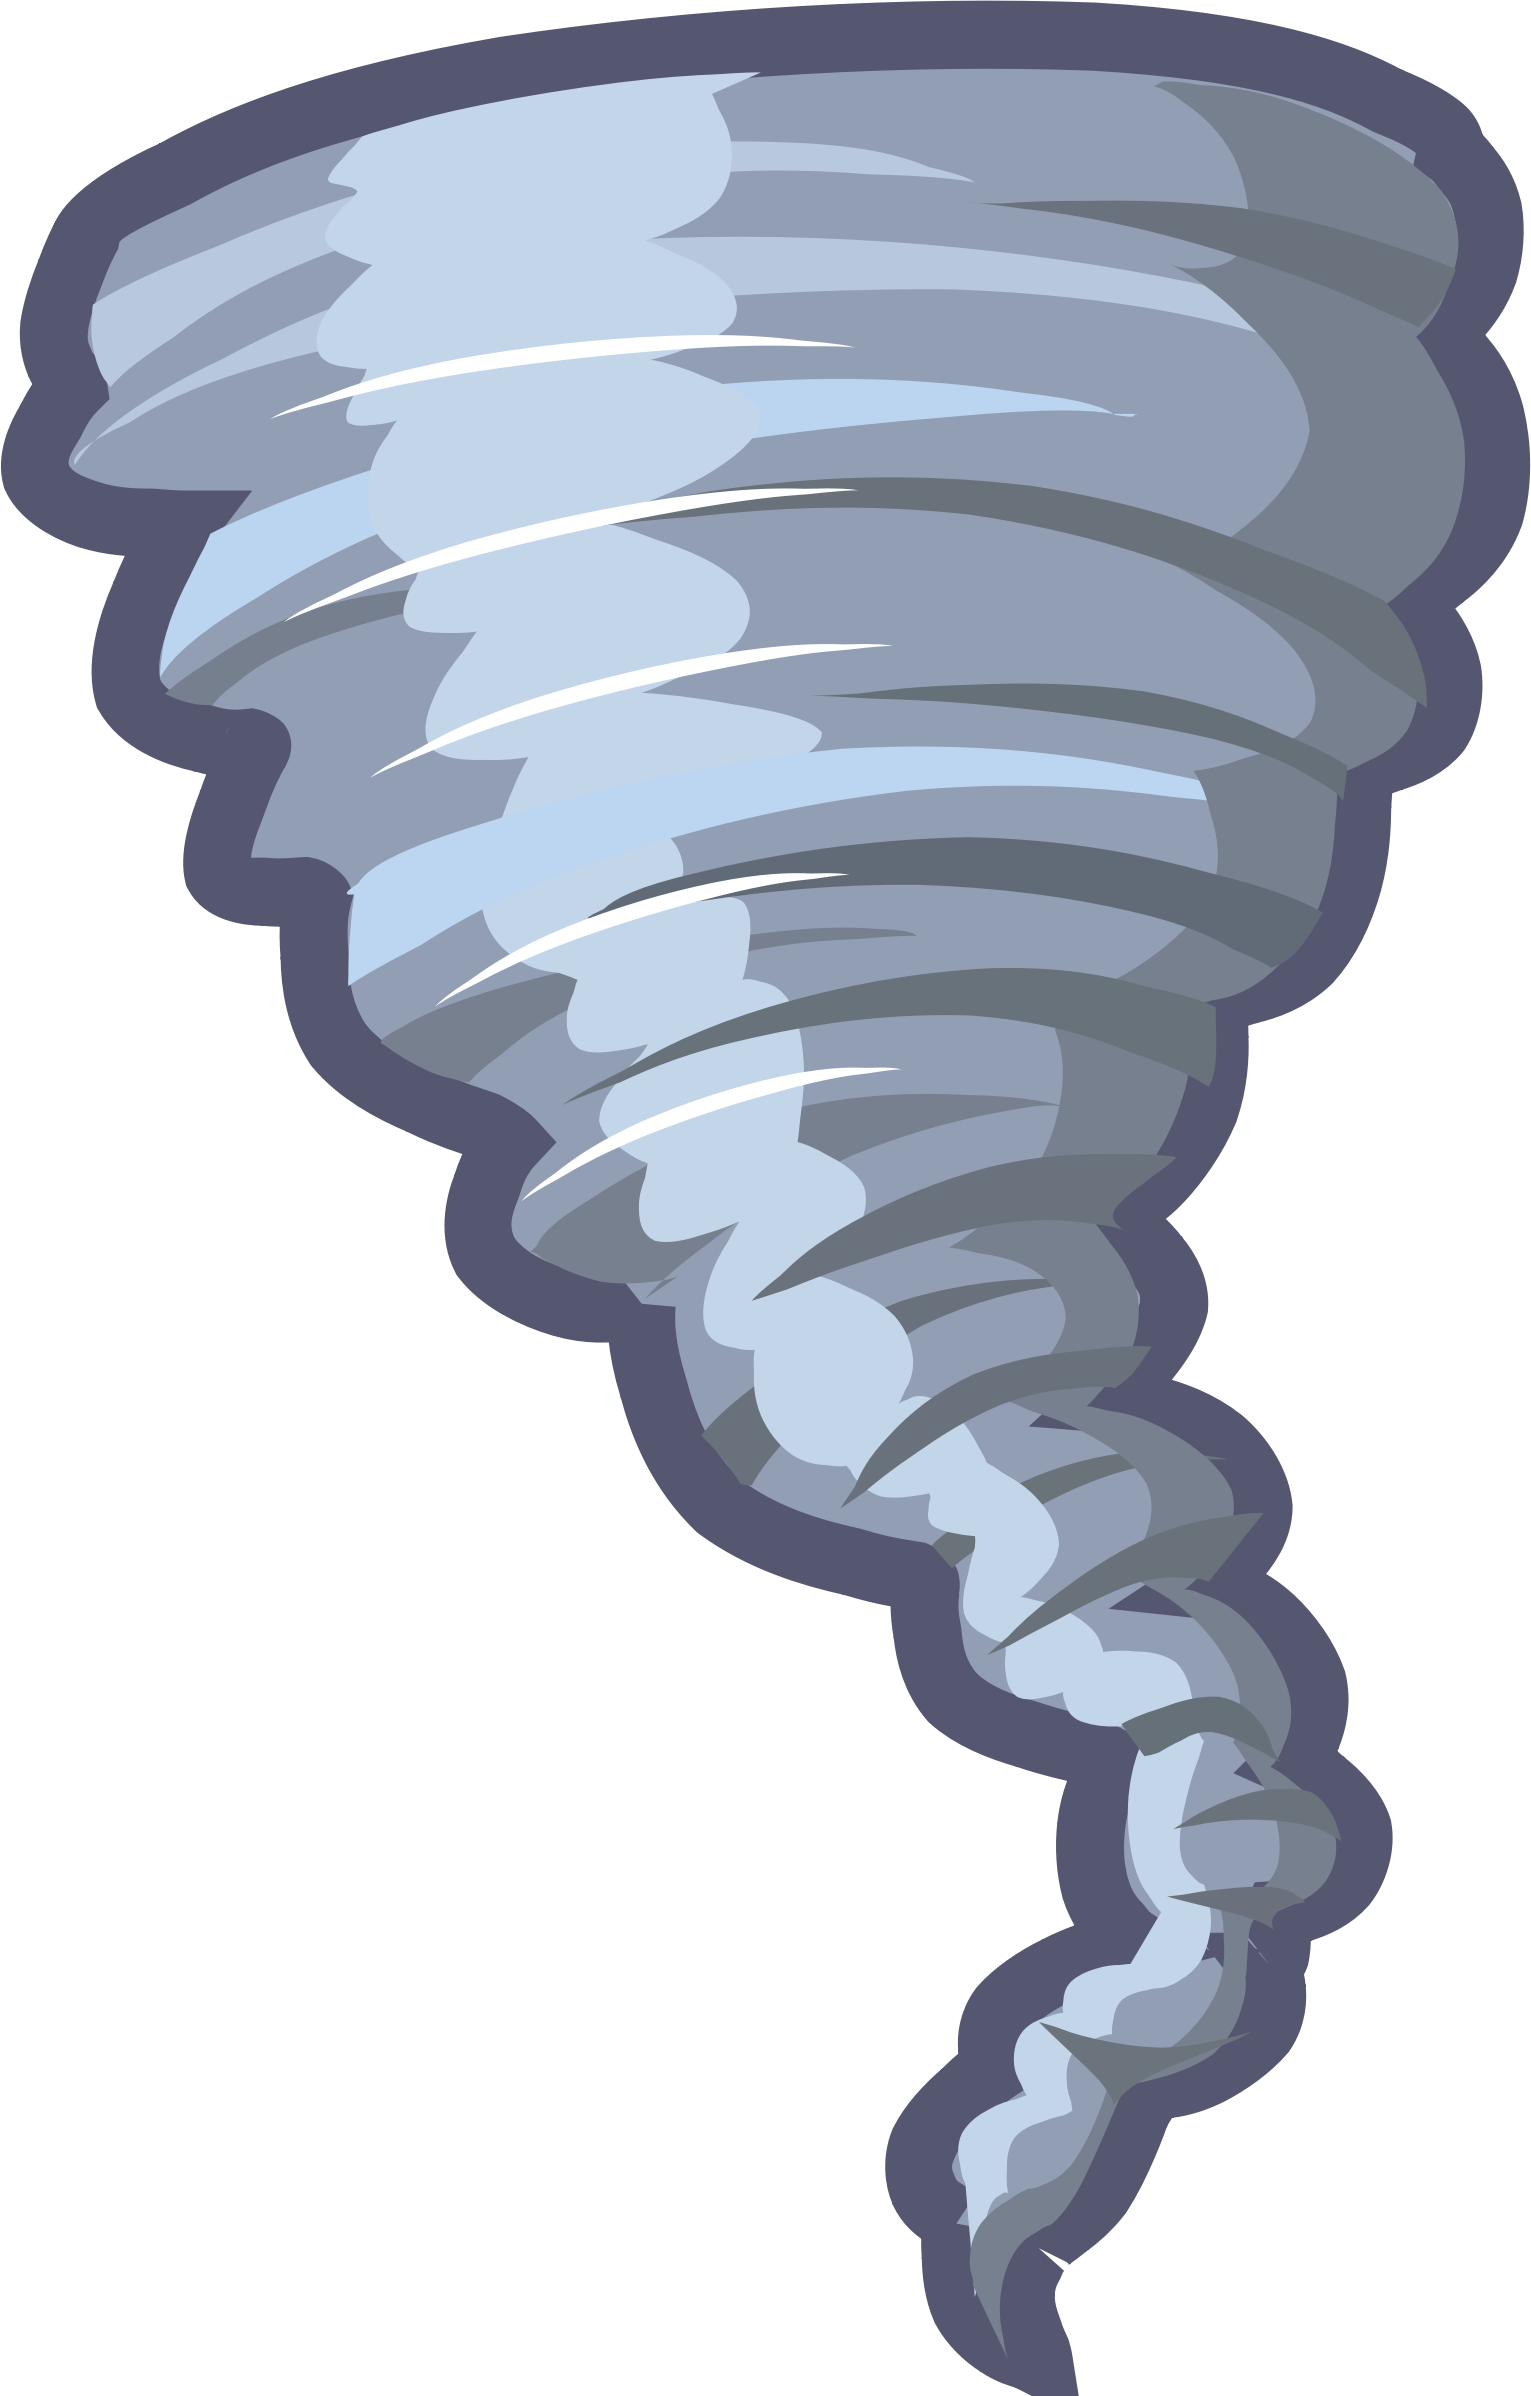 clipart free download Tornado Clipart typhoon